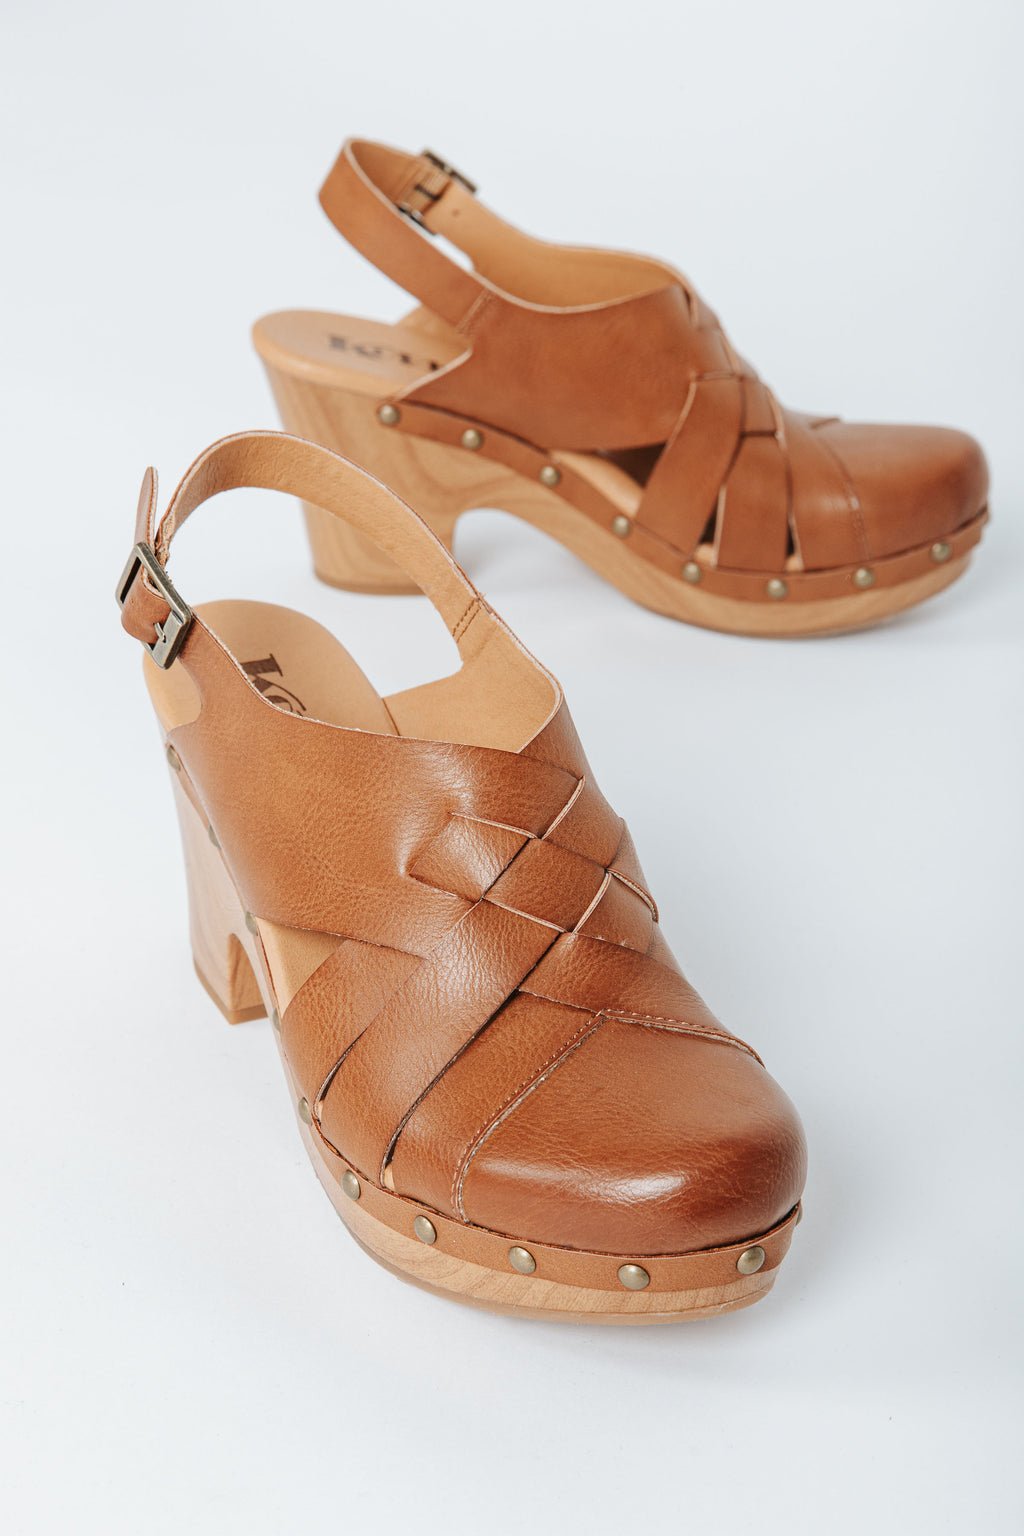 Korks by Korkease: Wynne Platform Clog Sandal in Tan